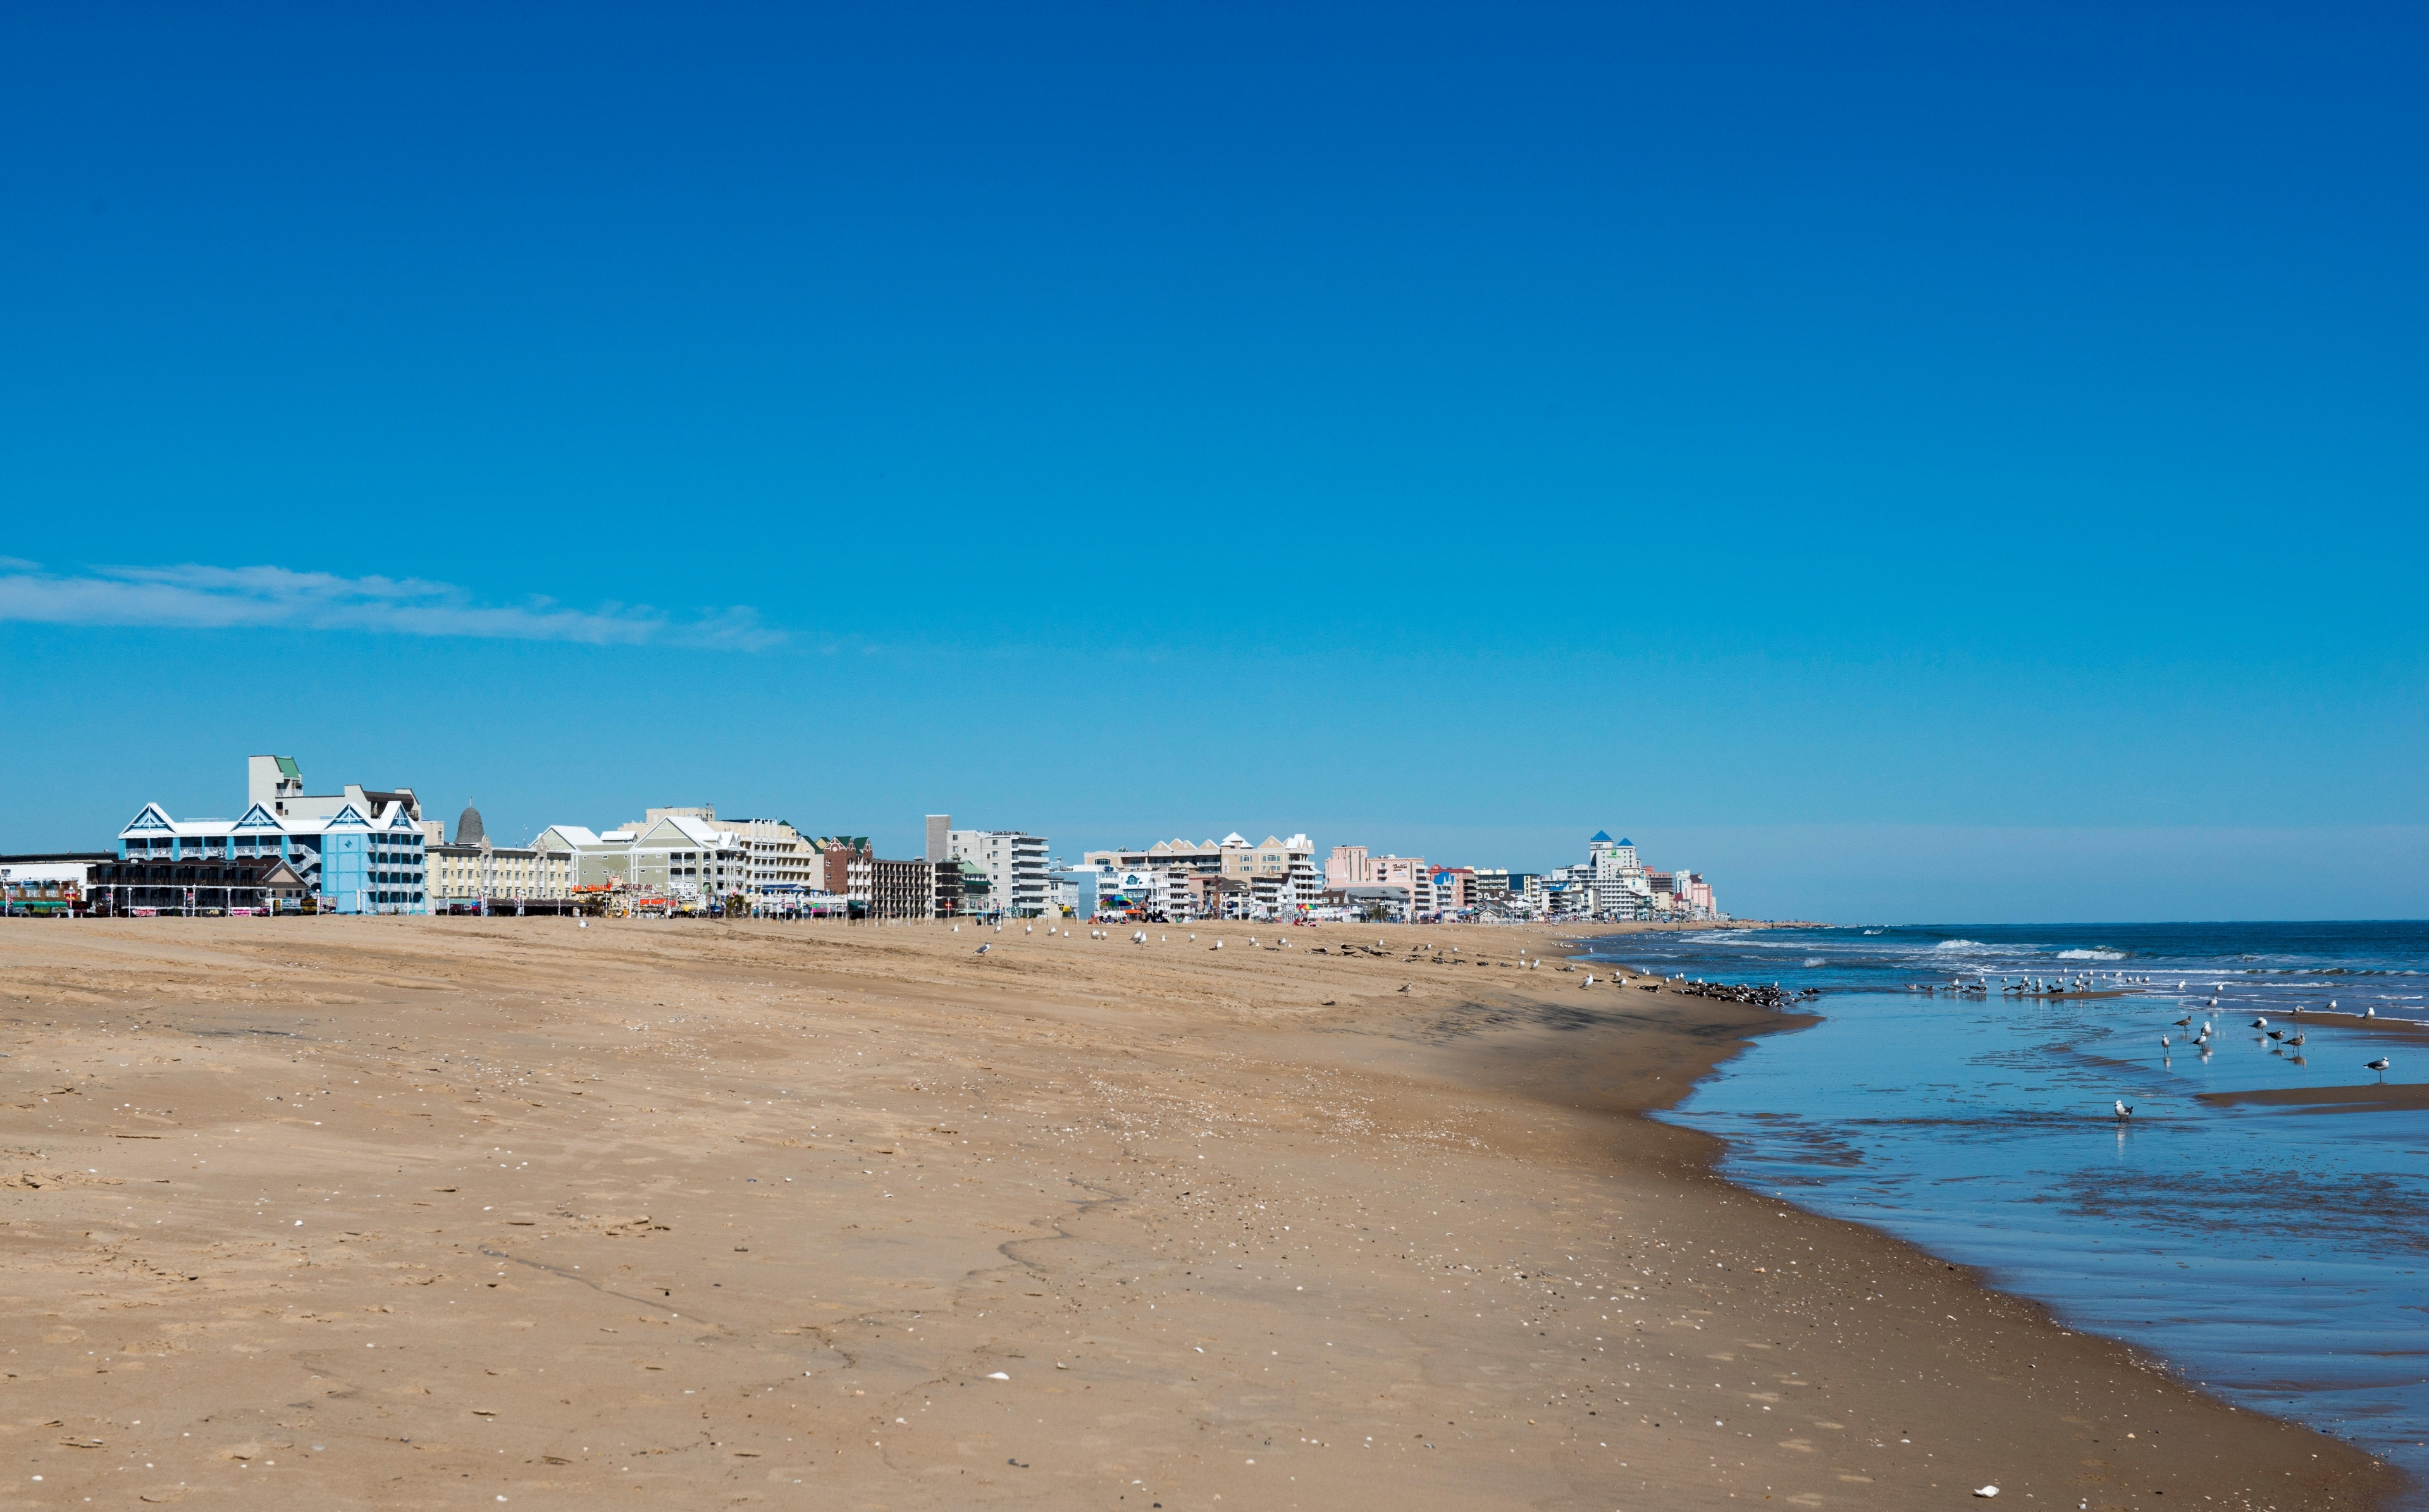 Ocean City, Maryland, United States of America